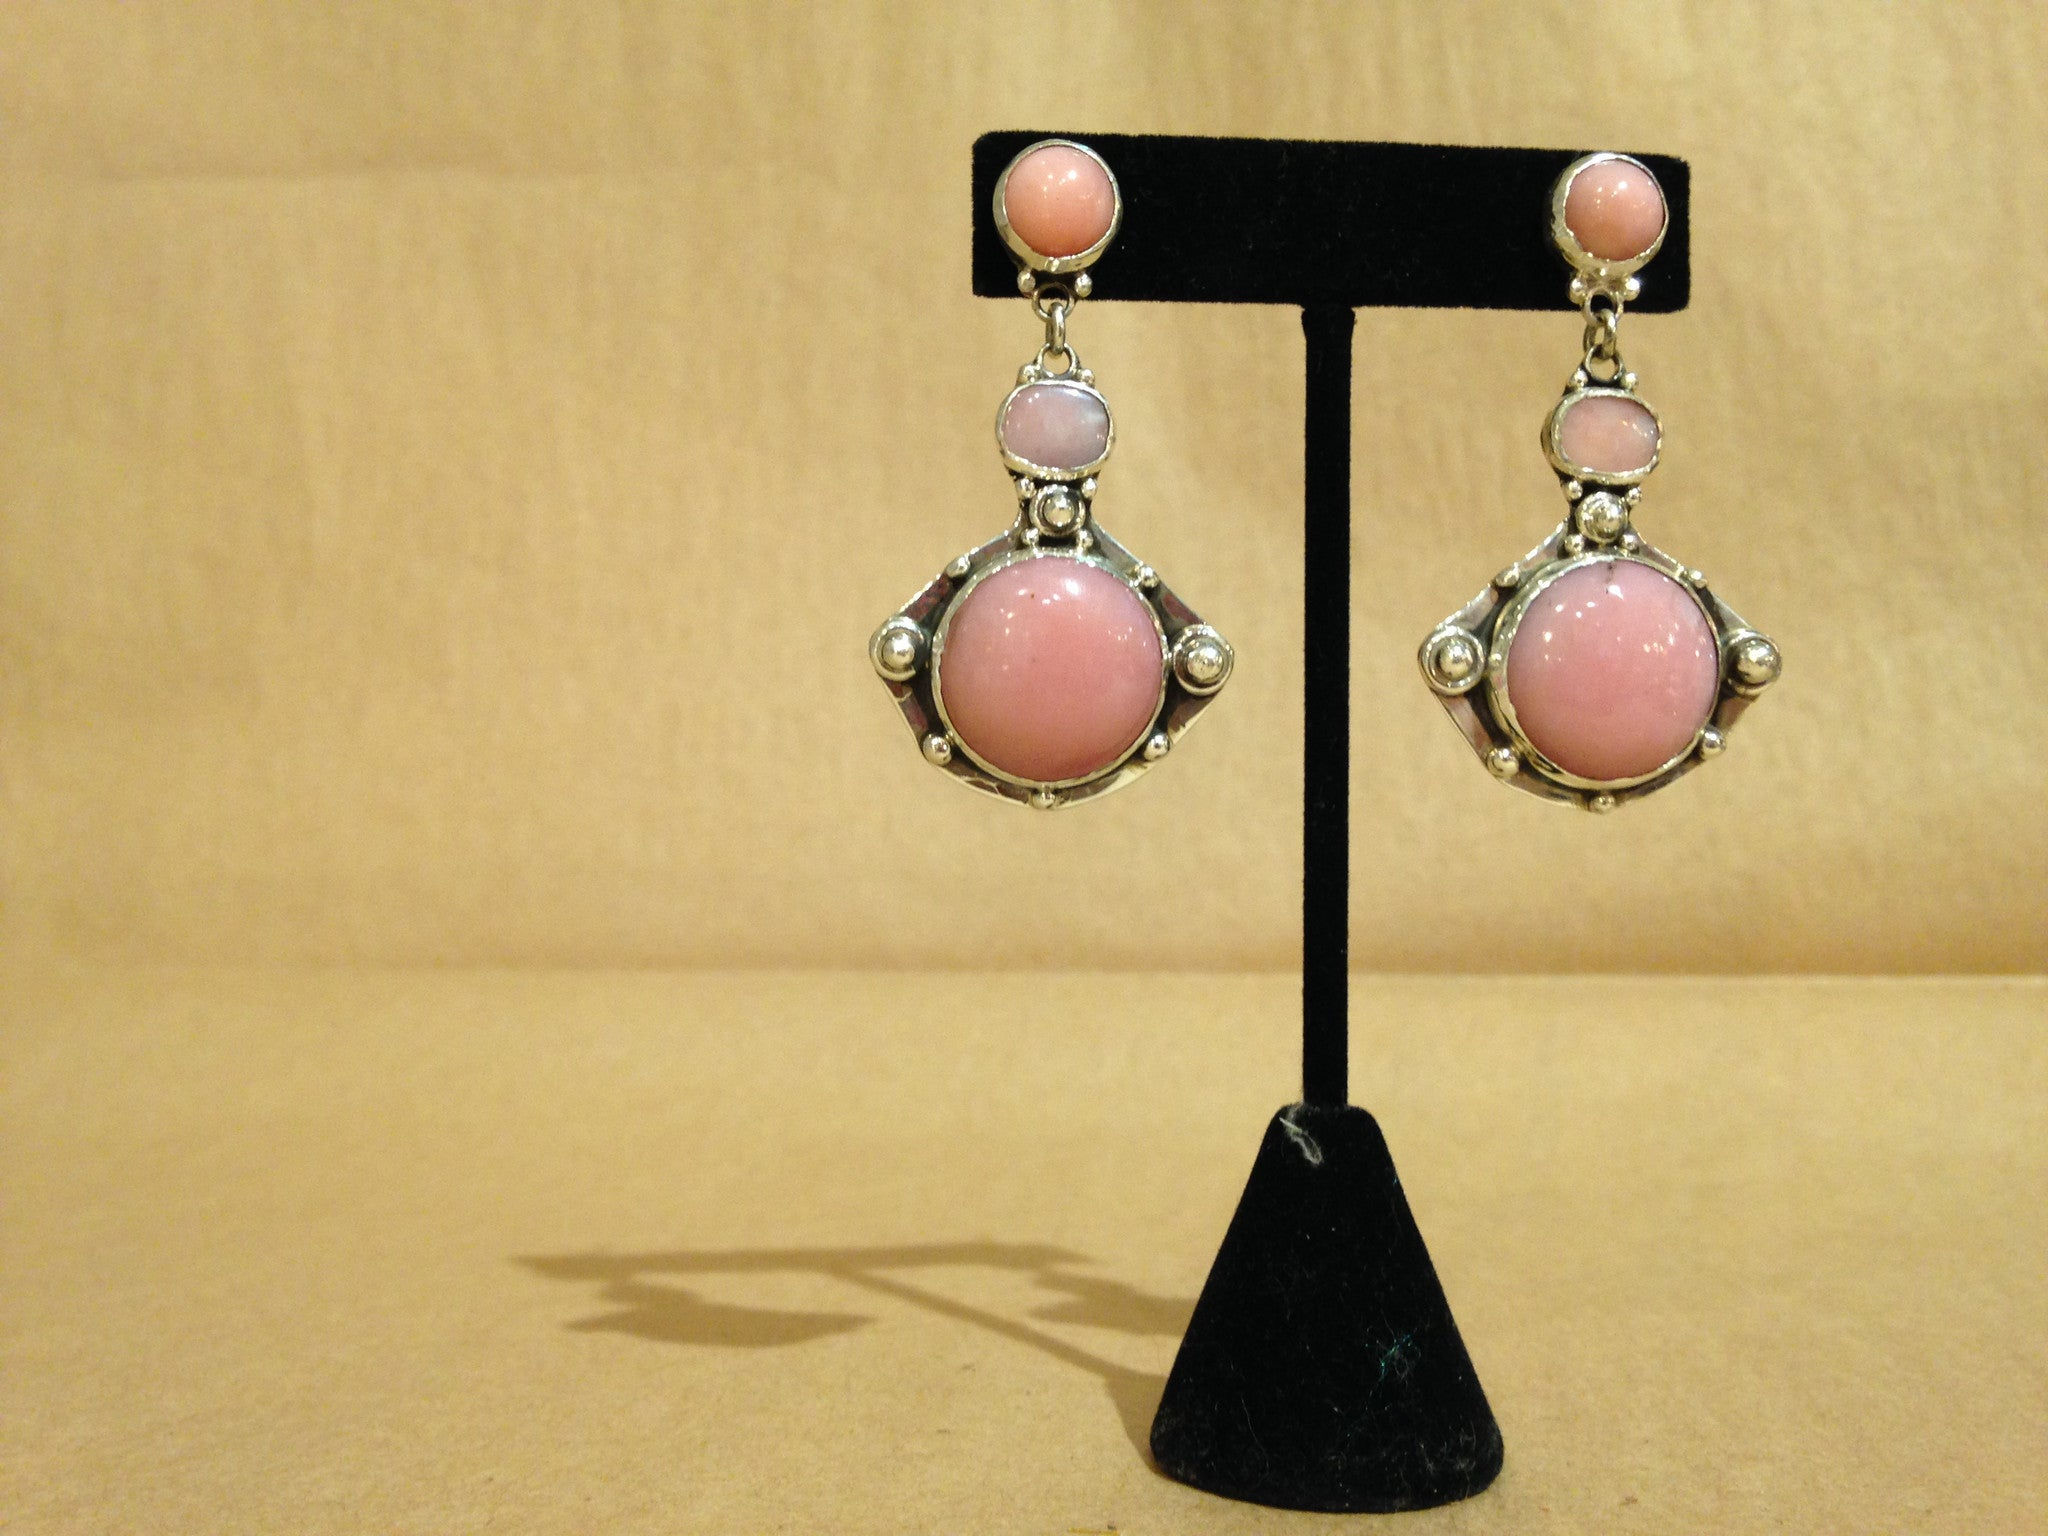 Margie Hiestand's Pink Opal Earrings